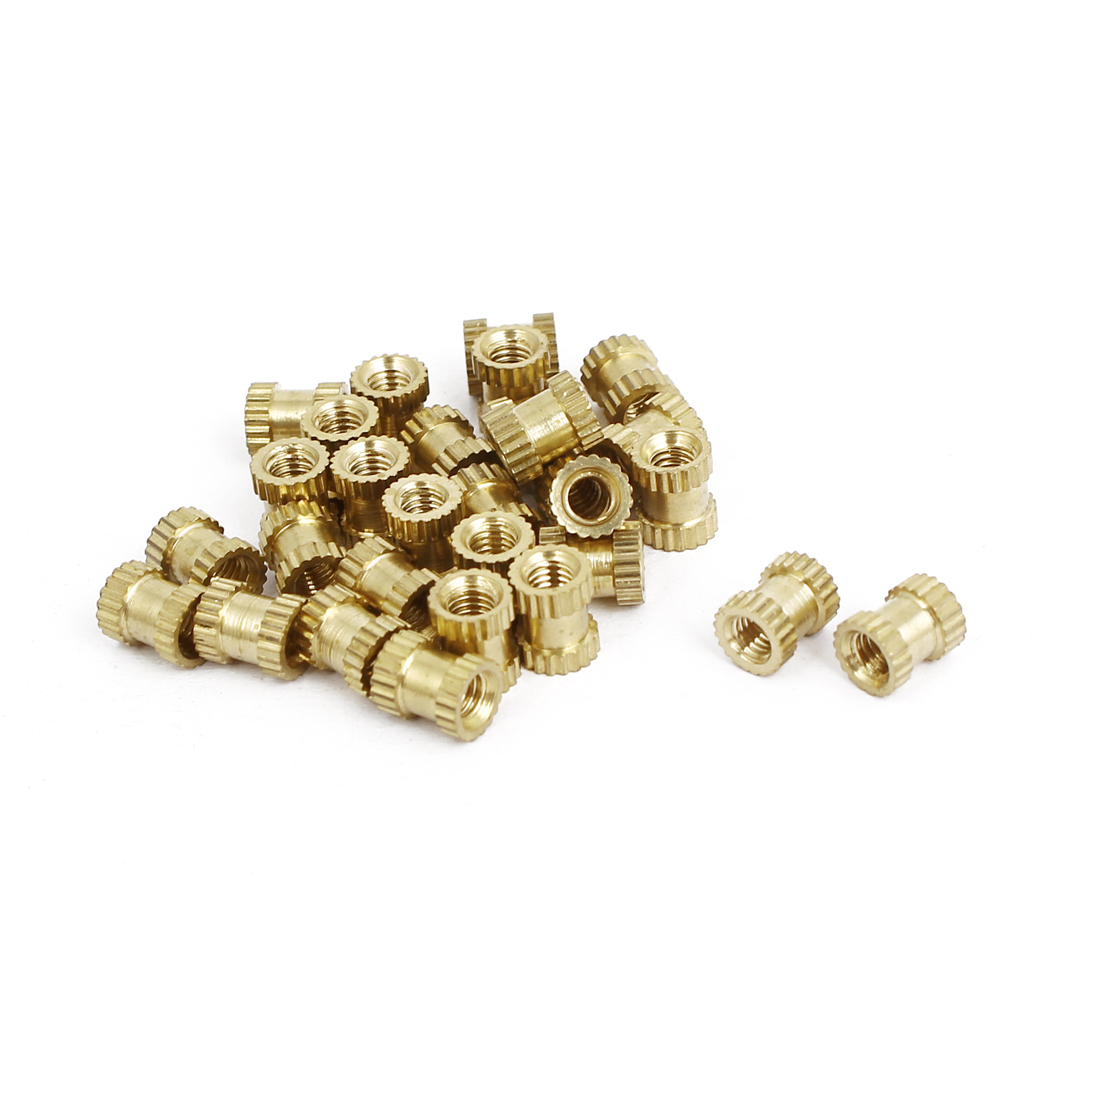 M3x6mmx5mm Female Threaded Brass Knurled Insert Embedded Nuts Gold Tone 30pcs